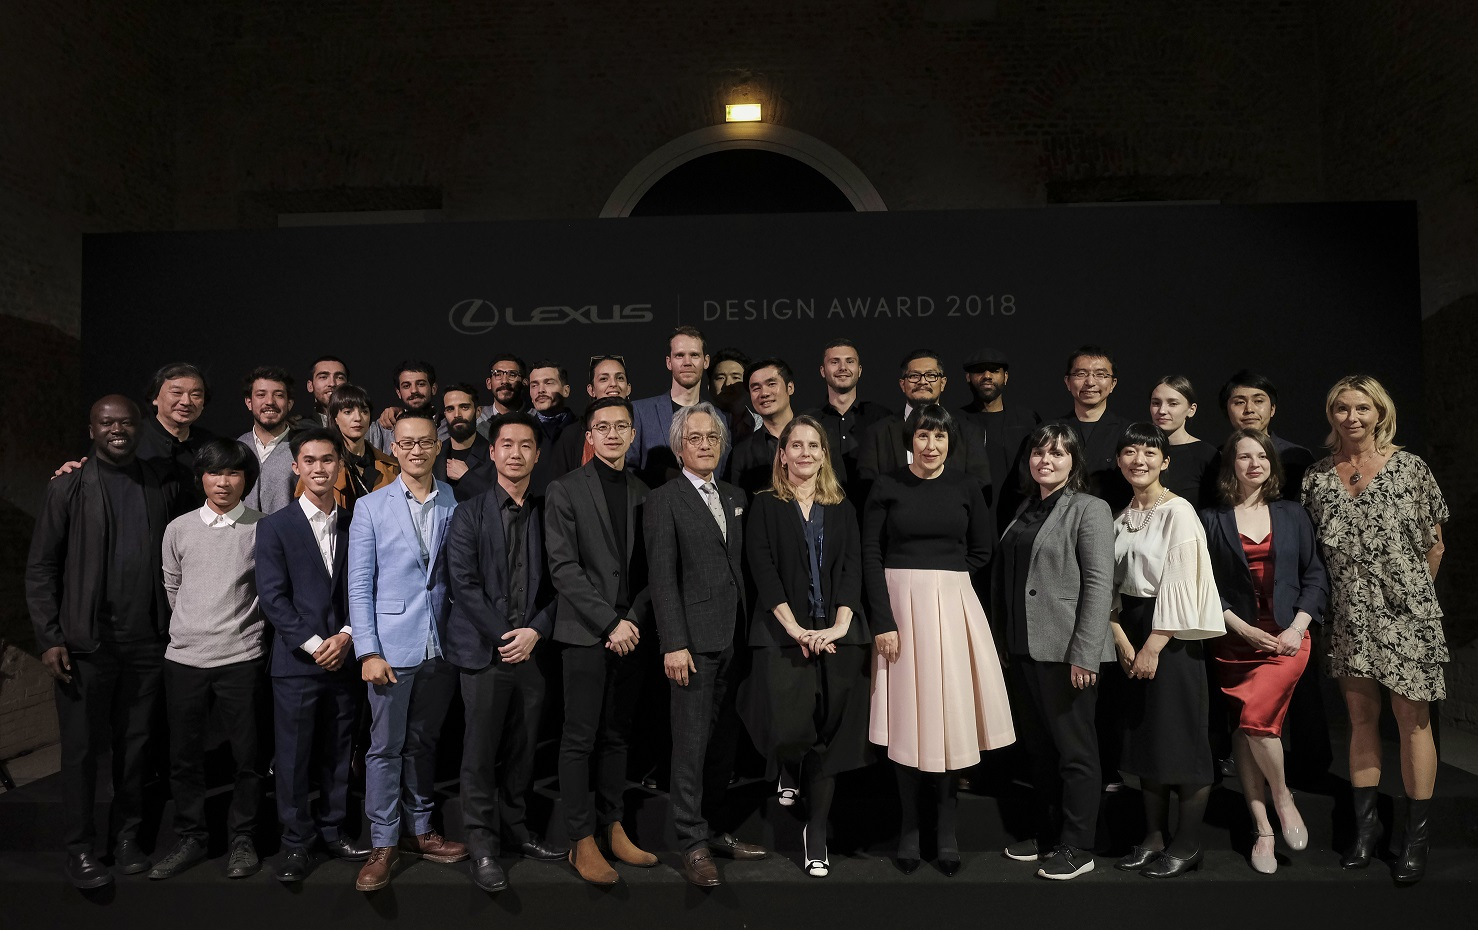 vencedores lexus design award 2018 Hero